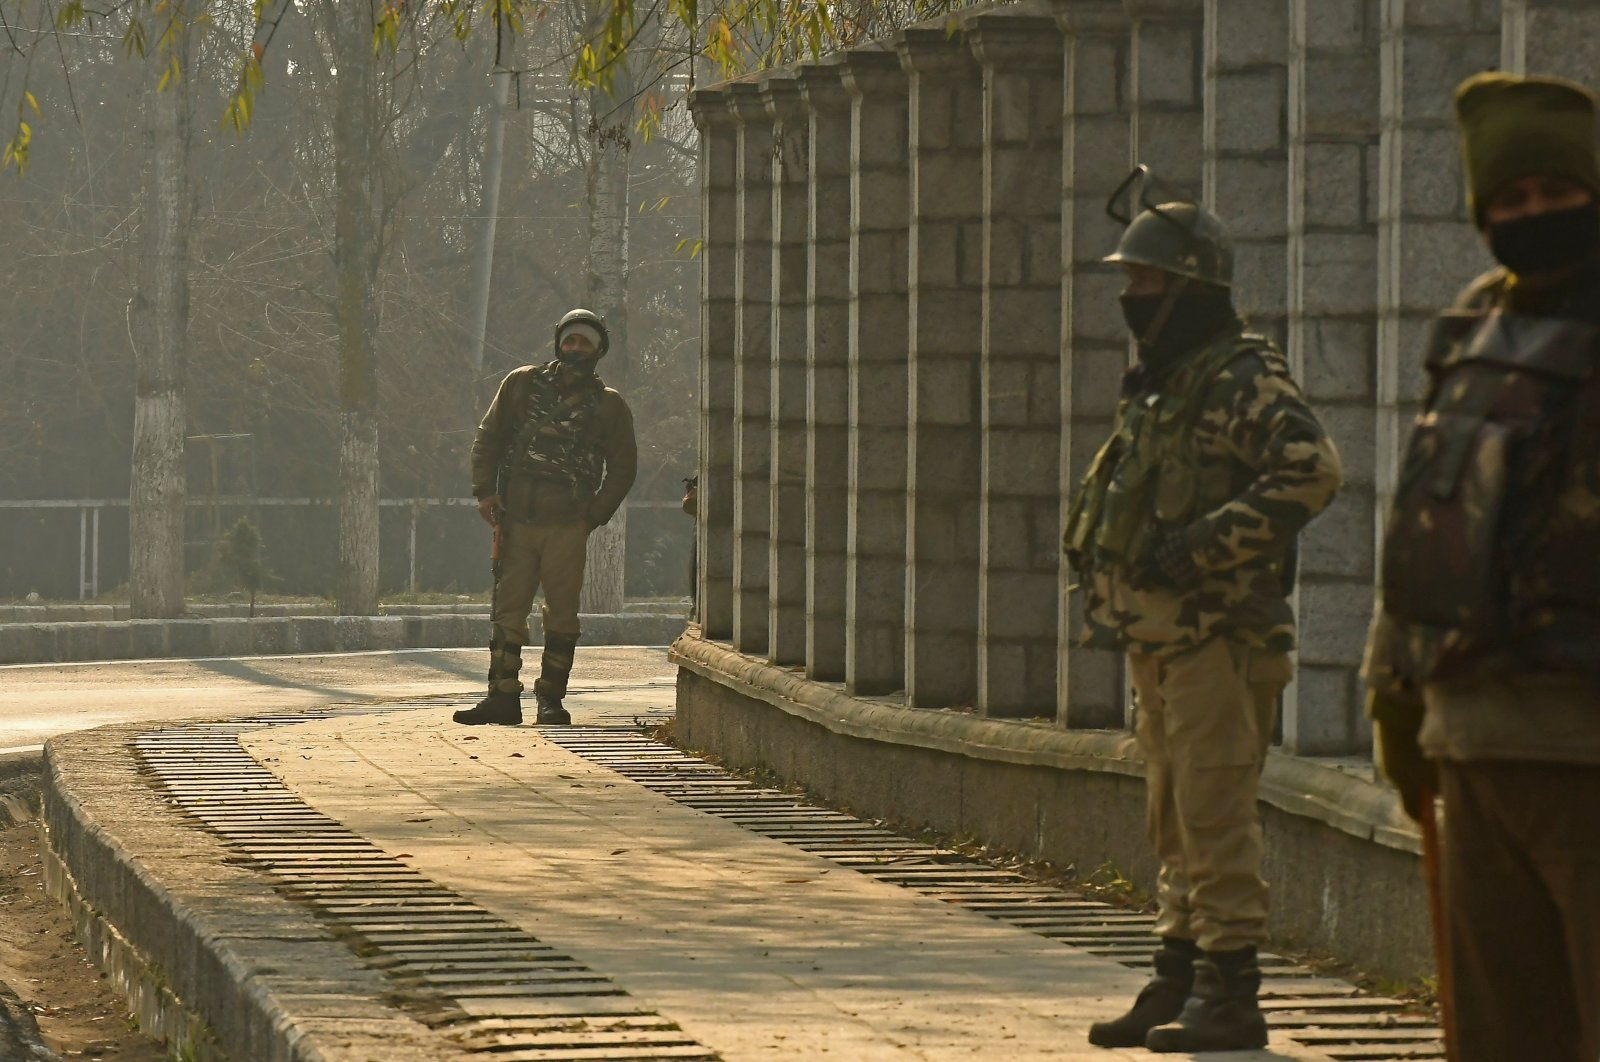 Indian paramilitary troopers stand guard outside a counting center for the District Development Council (DDC) polls in Srinagar, India, Dec. 22, 2020. (AFP)